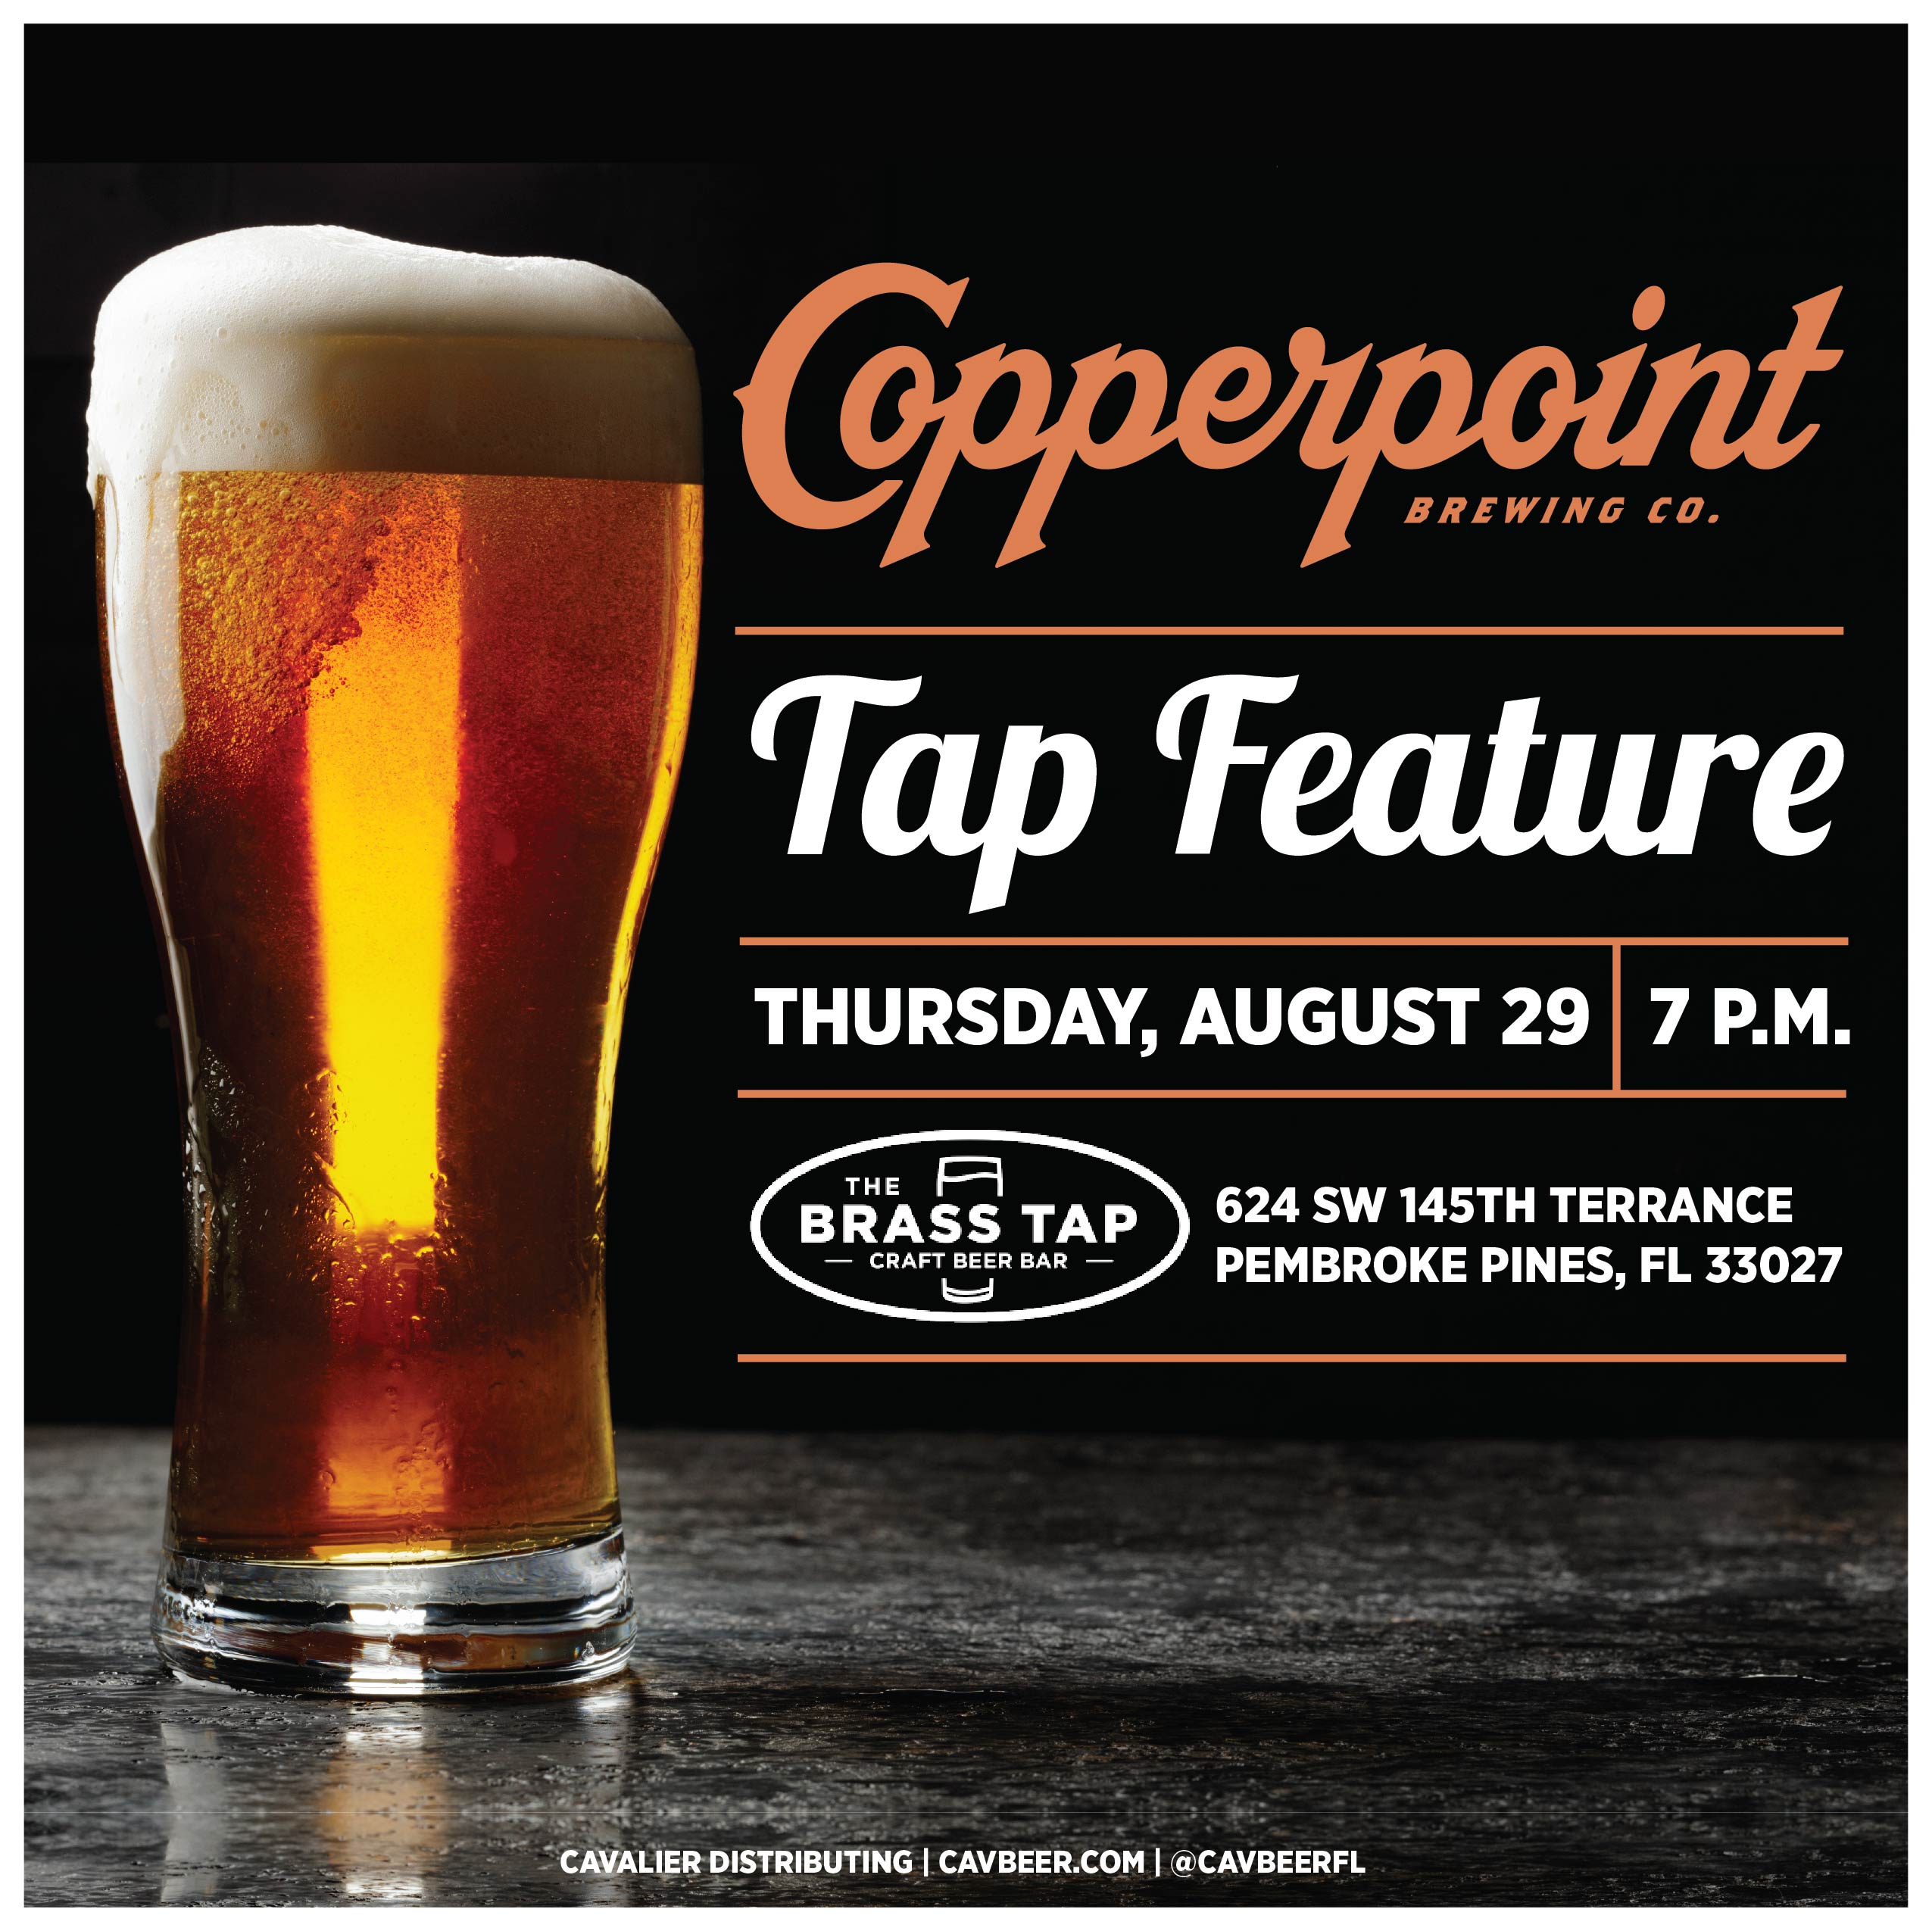 Copperpoint Brewing @ The Brass Tap